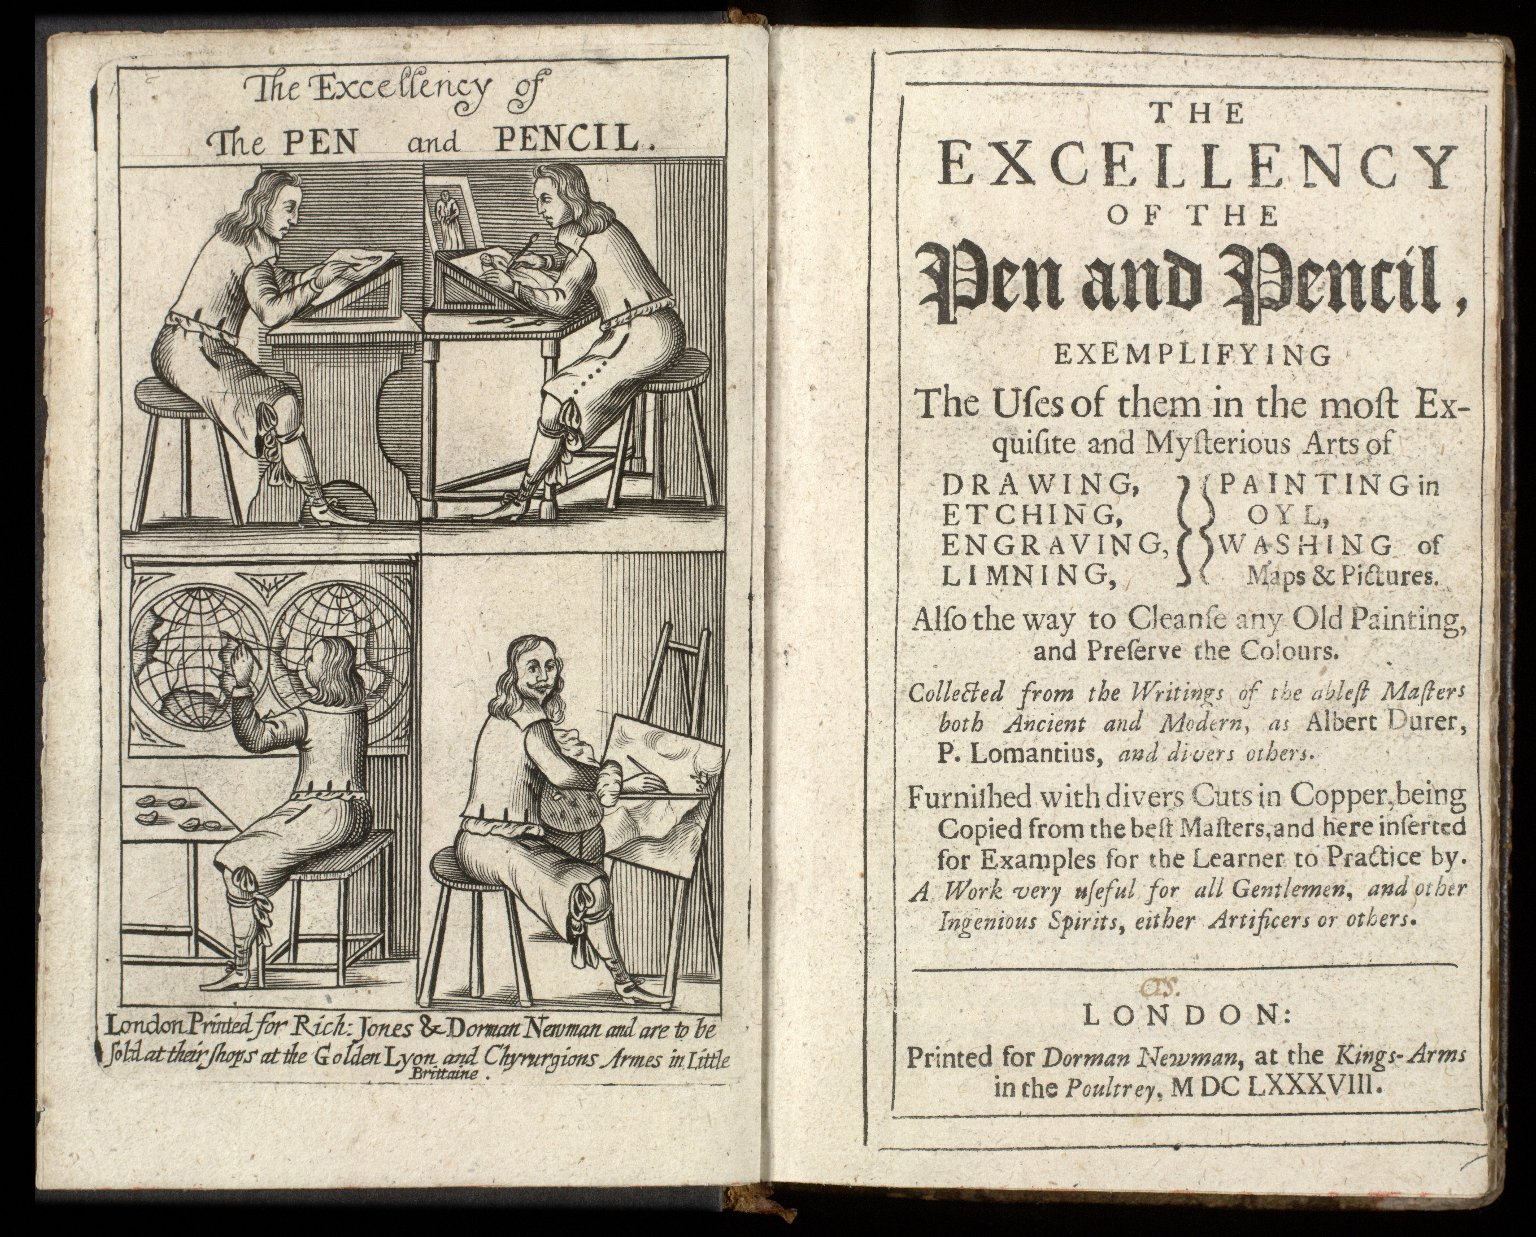 The excellency of the pen and pencil, : exemplifying the uses of them in the most exquisite and mysterious arts of drawing, etching, engraving, limning, painting in oyl, washing of maps & pictures. ... [1 of 8]